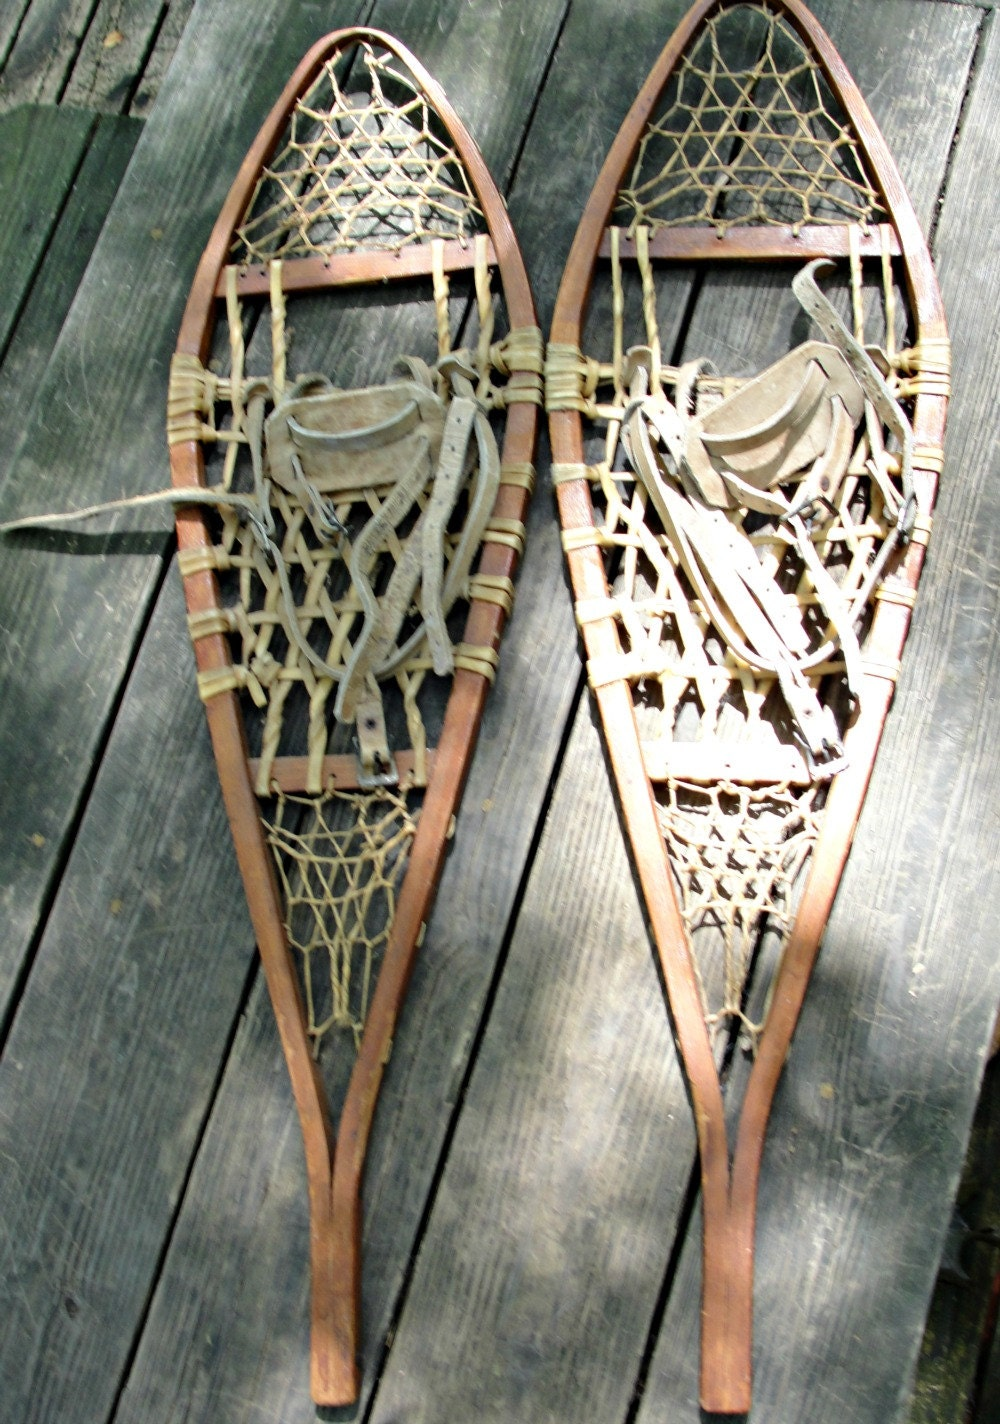 Vintage Snowshoes Wall Decor Sports Hiking Rustic Adirondack